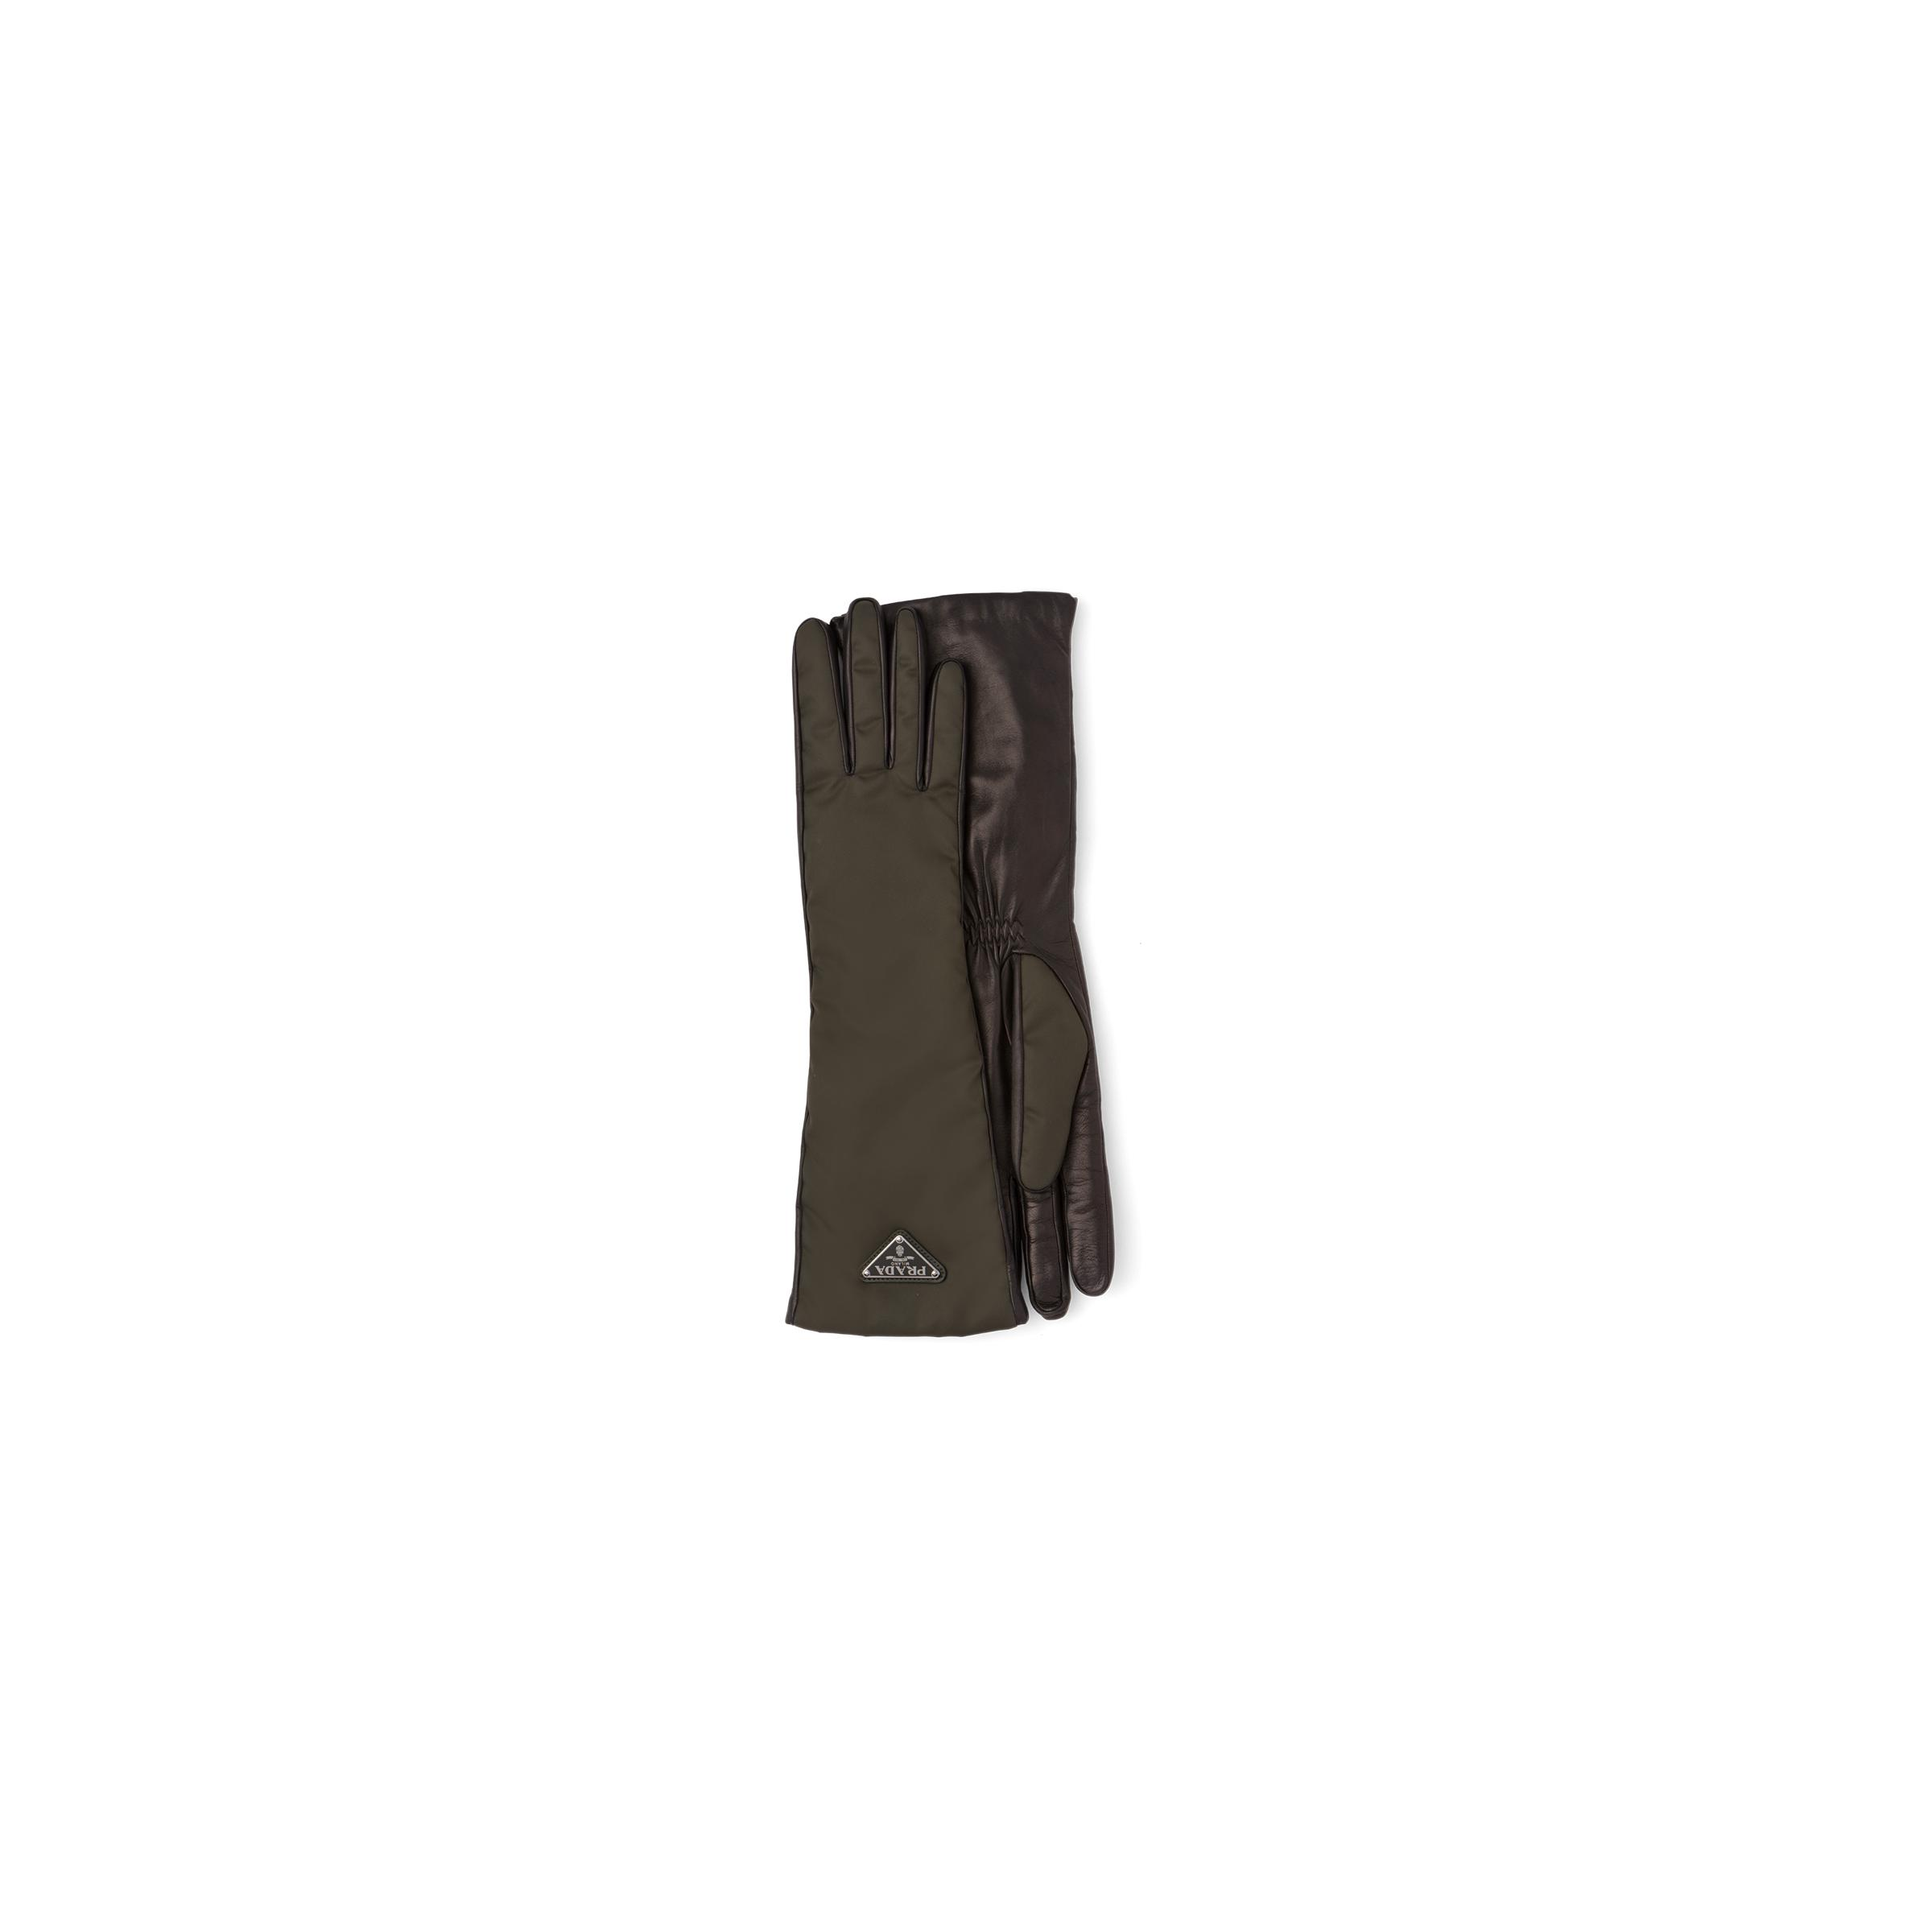 Nylon And Nappa Leather Gloves Women Camouflage/black 0